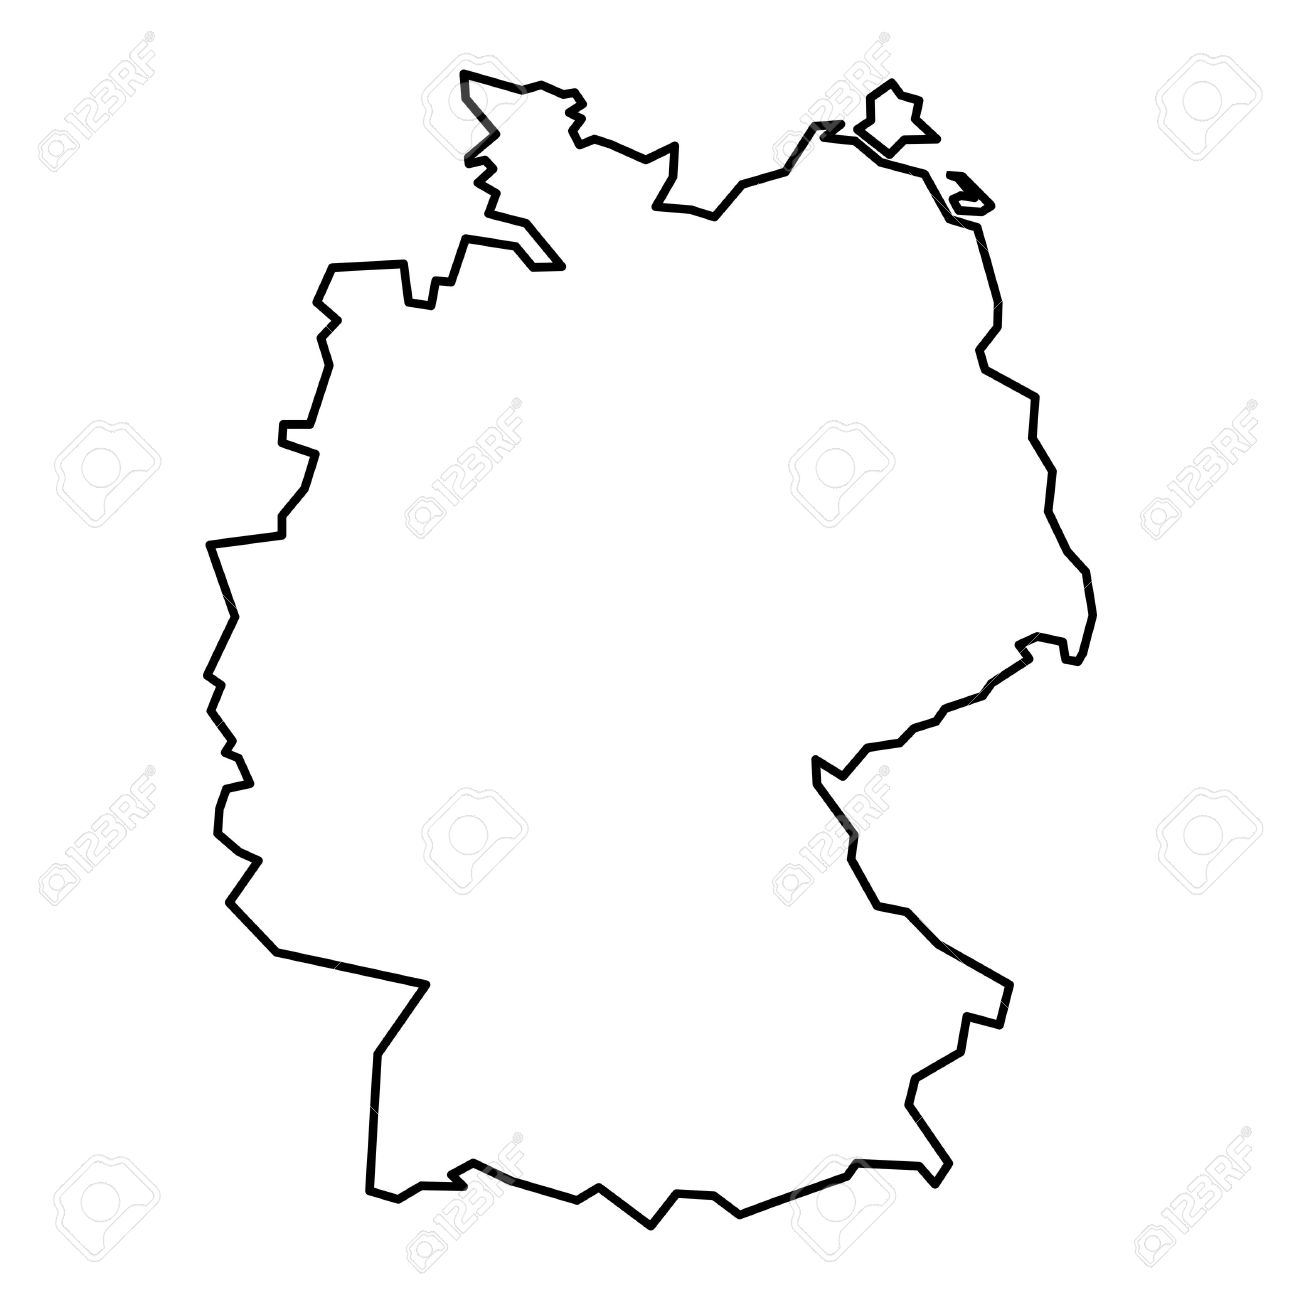 Simple Map Of Germany.Simple Contour Map Of Germany Black Outline Map Isolated On